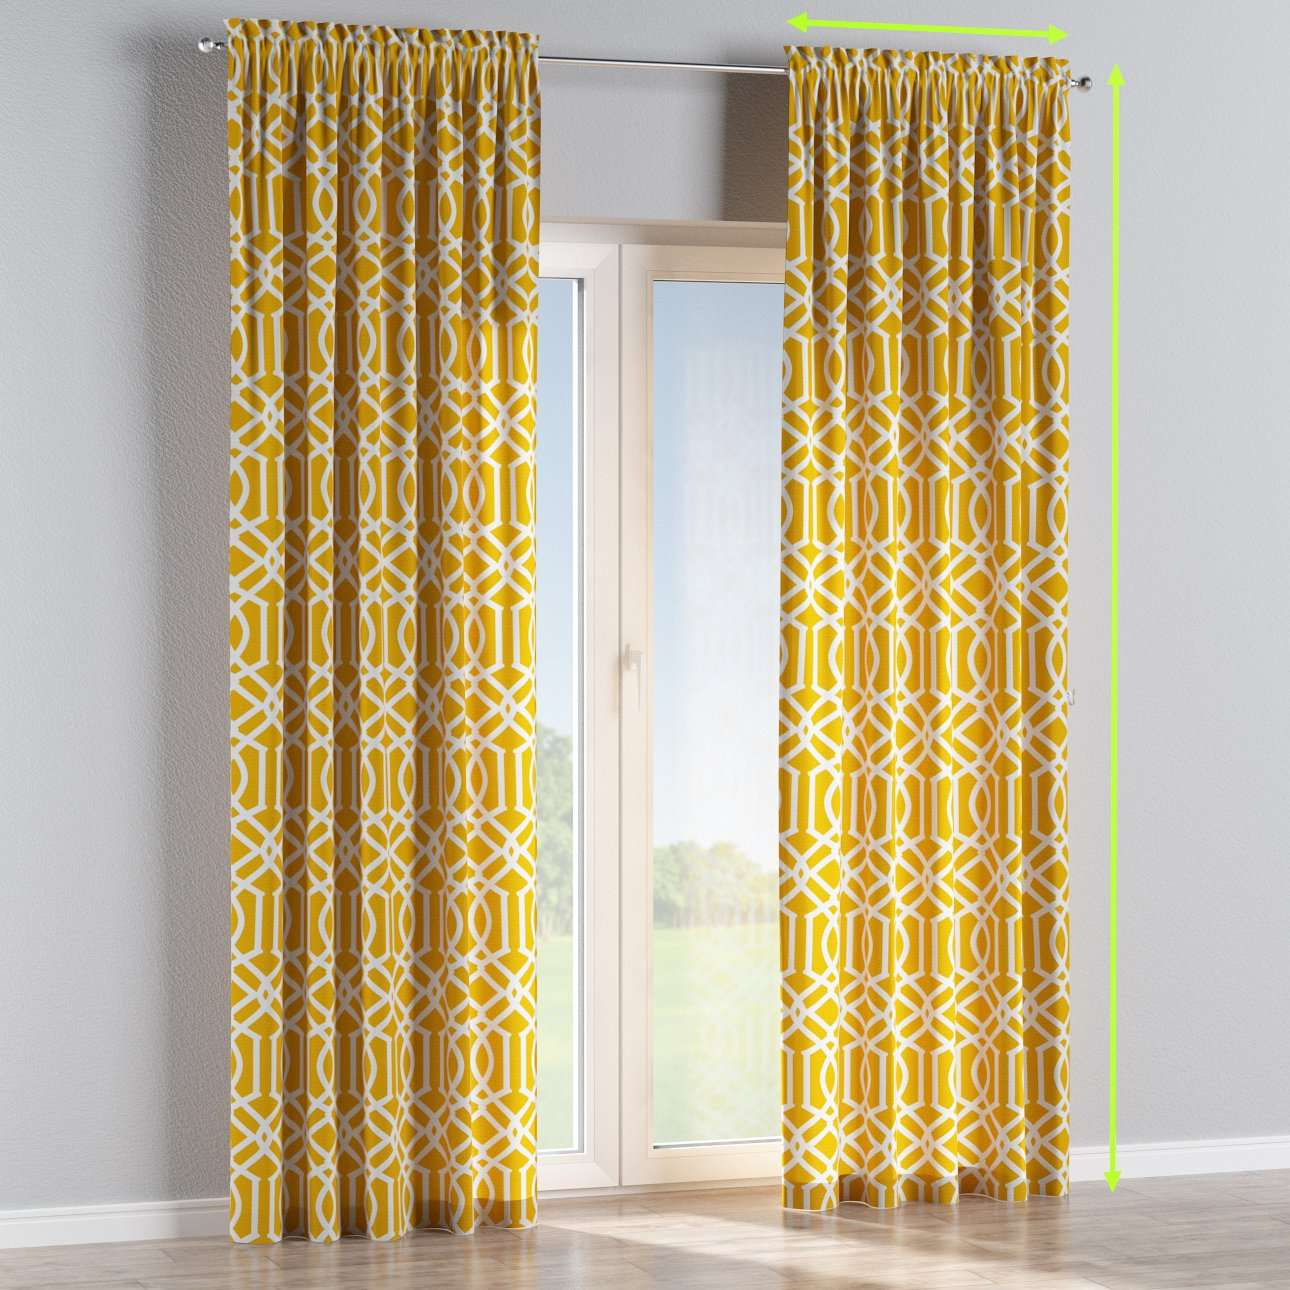 Slot and frill curtains in collection Comic Book & Geo Prints, fabric: 135-09